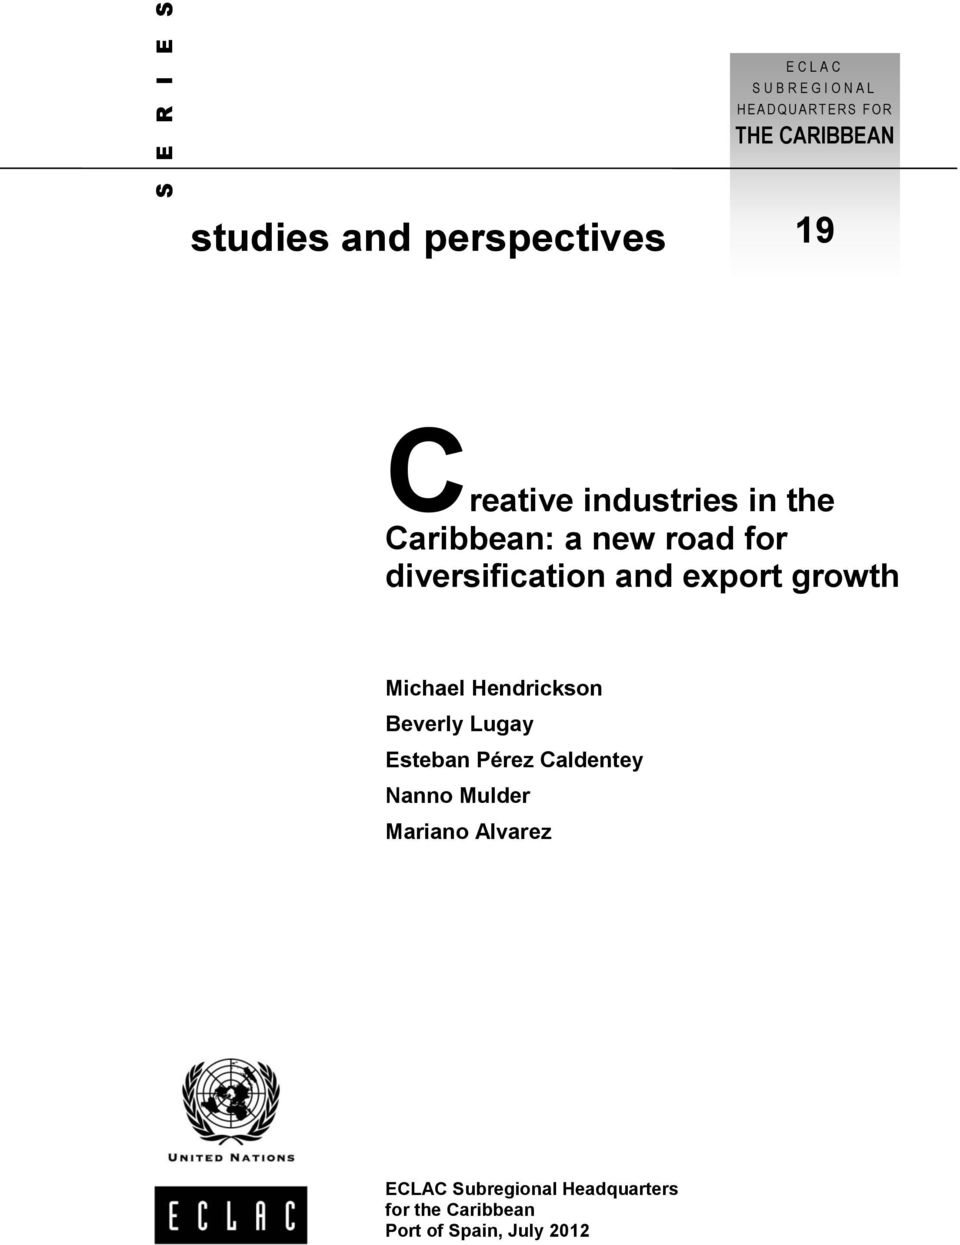 diversification and export growth Michael Hendrickson Beverly Lugay Esteban Pérez